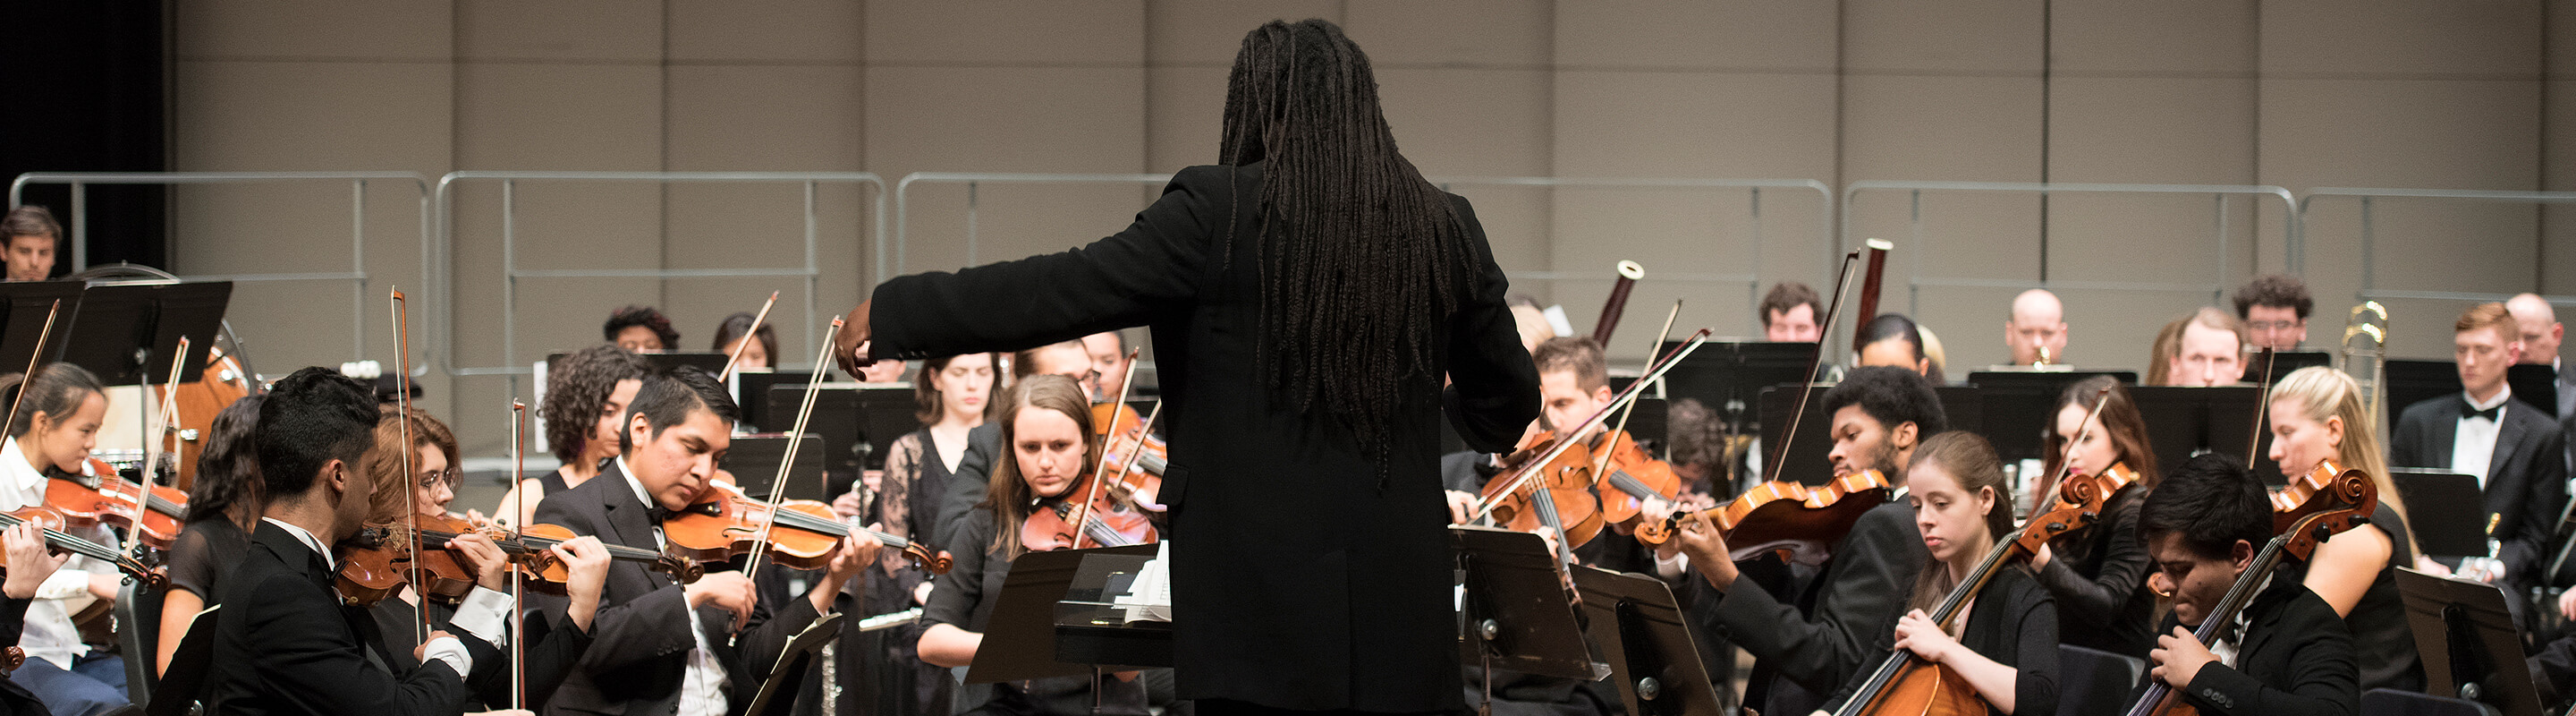 Conductor with back to the camera and orchestra playing